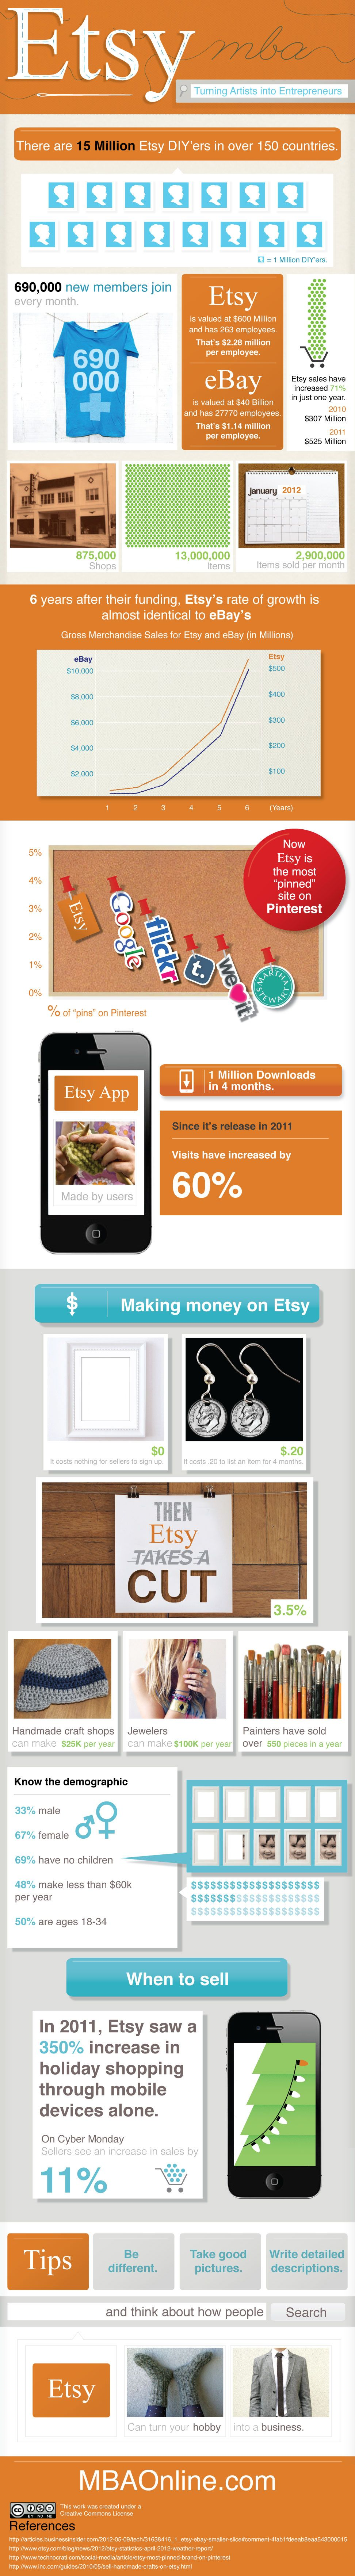 How Etsy Turns Artists Into Entrepreneurs